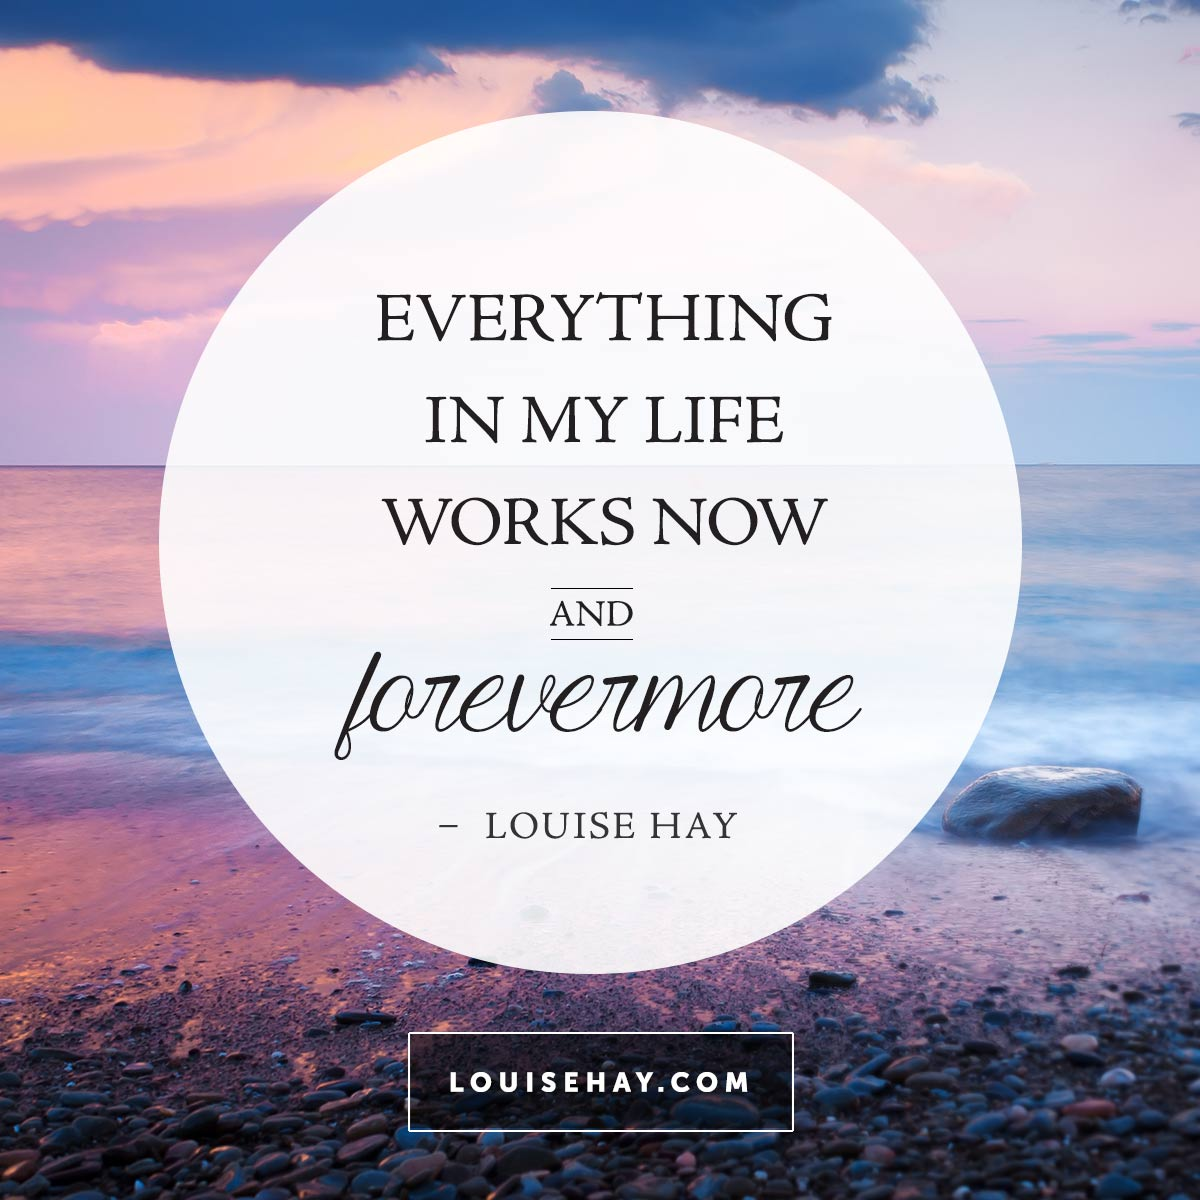 Motivational Quotes About Success: Daily Affirmations & Beautiful Quotes From Louise Hay